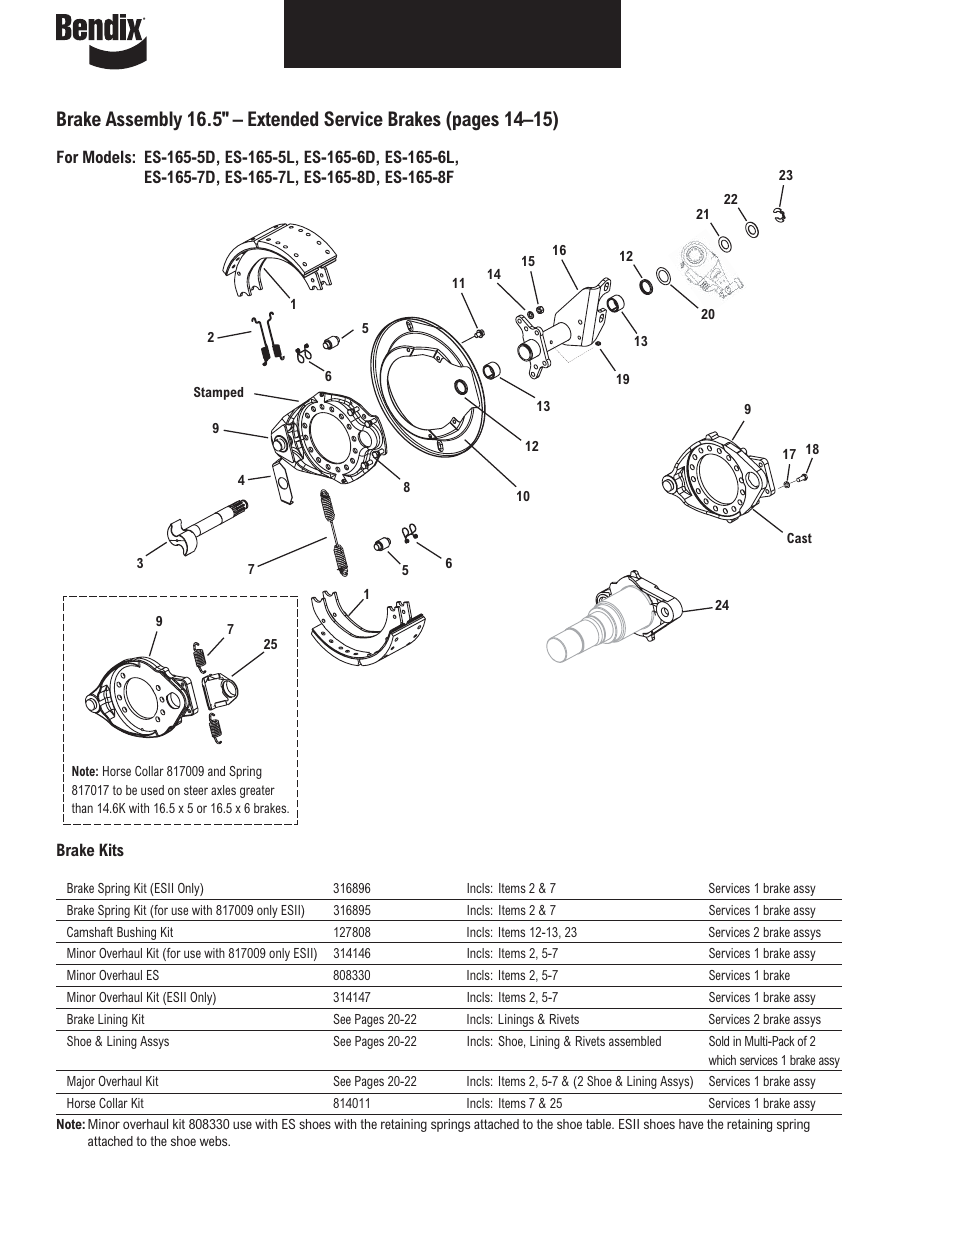 bendix commercial vehicle systems illustrated parts list